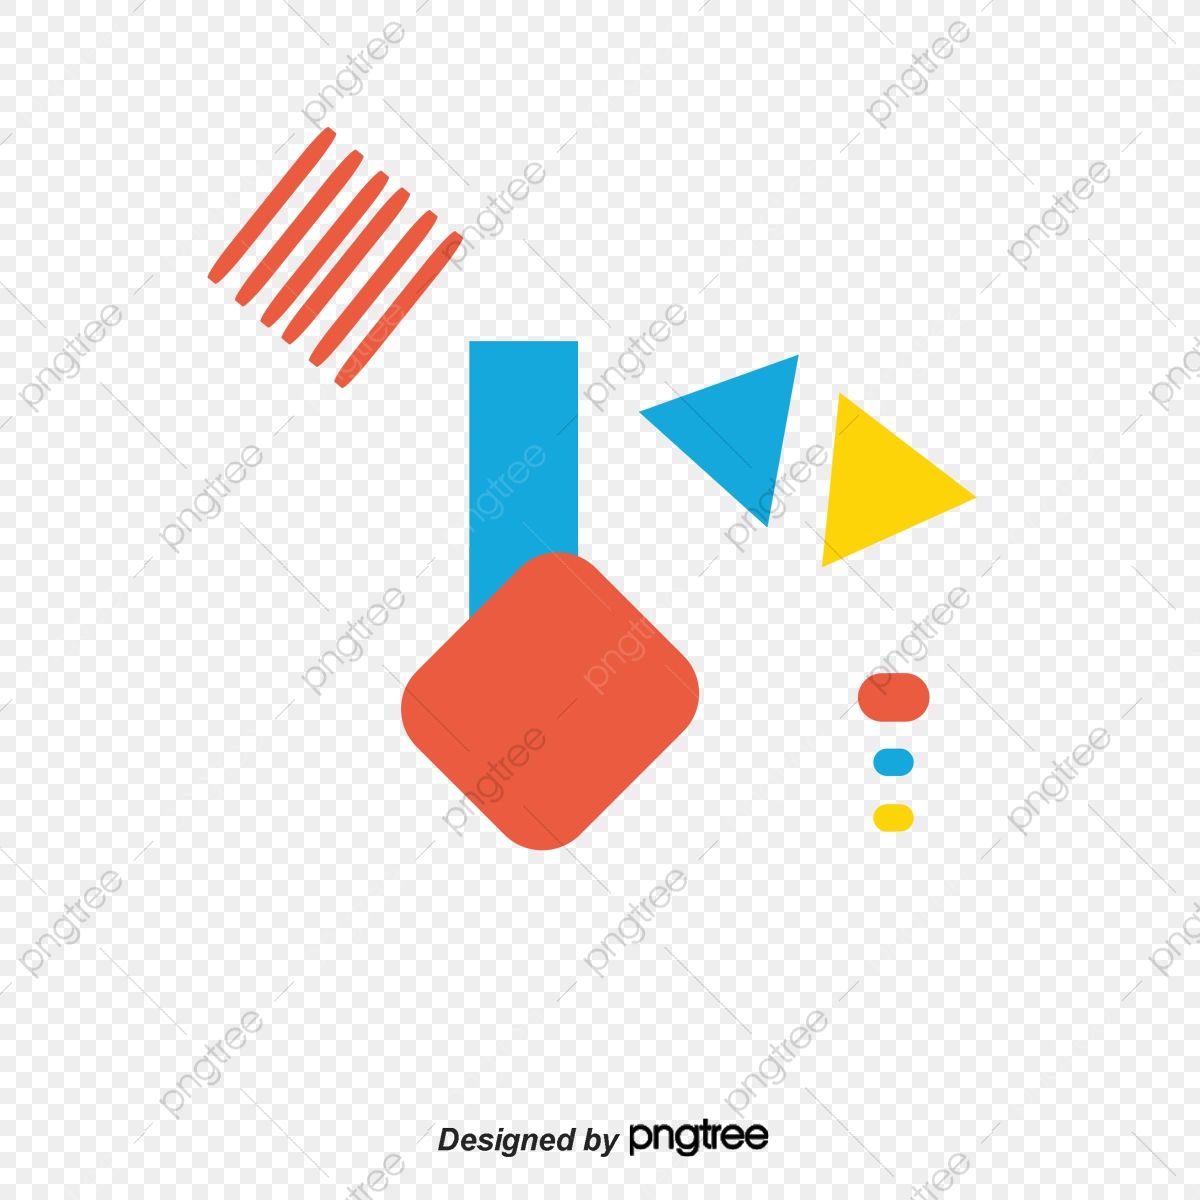 Abstract Geometric Patterns, Abstract Vector, Geometric